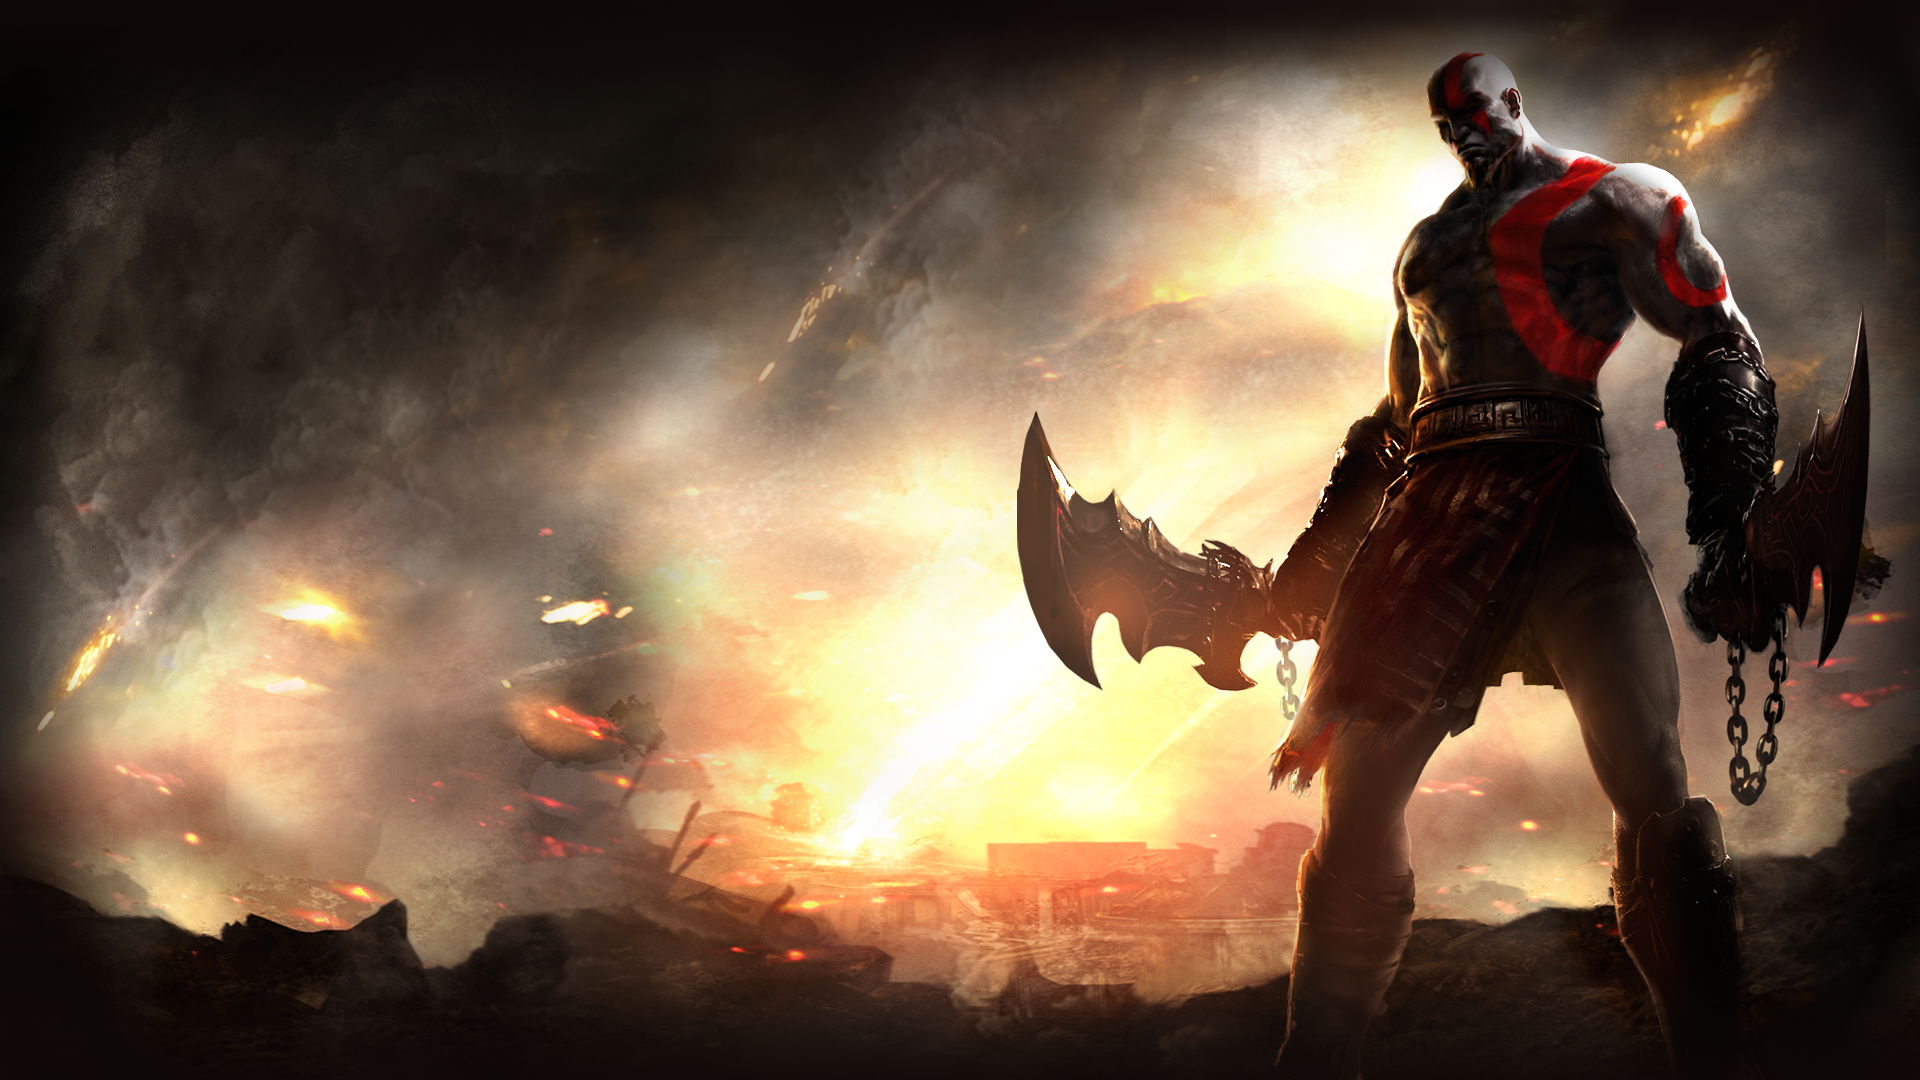 God Of War Hd Wallpapers 27 Images Dodowallpaper